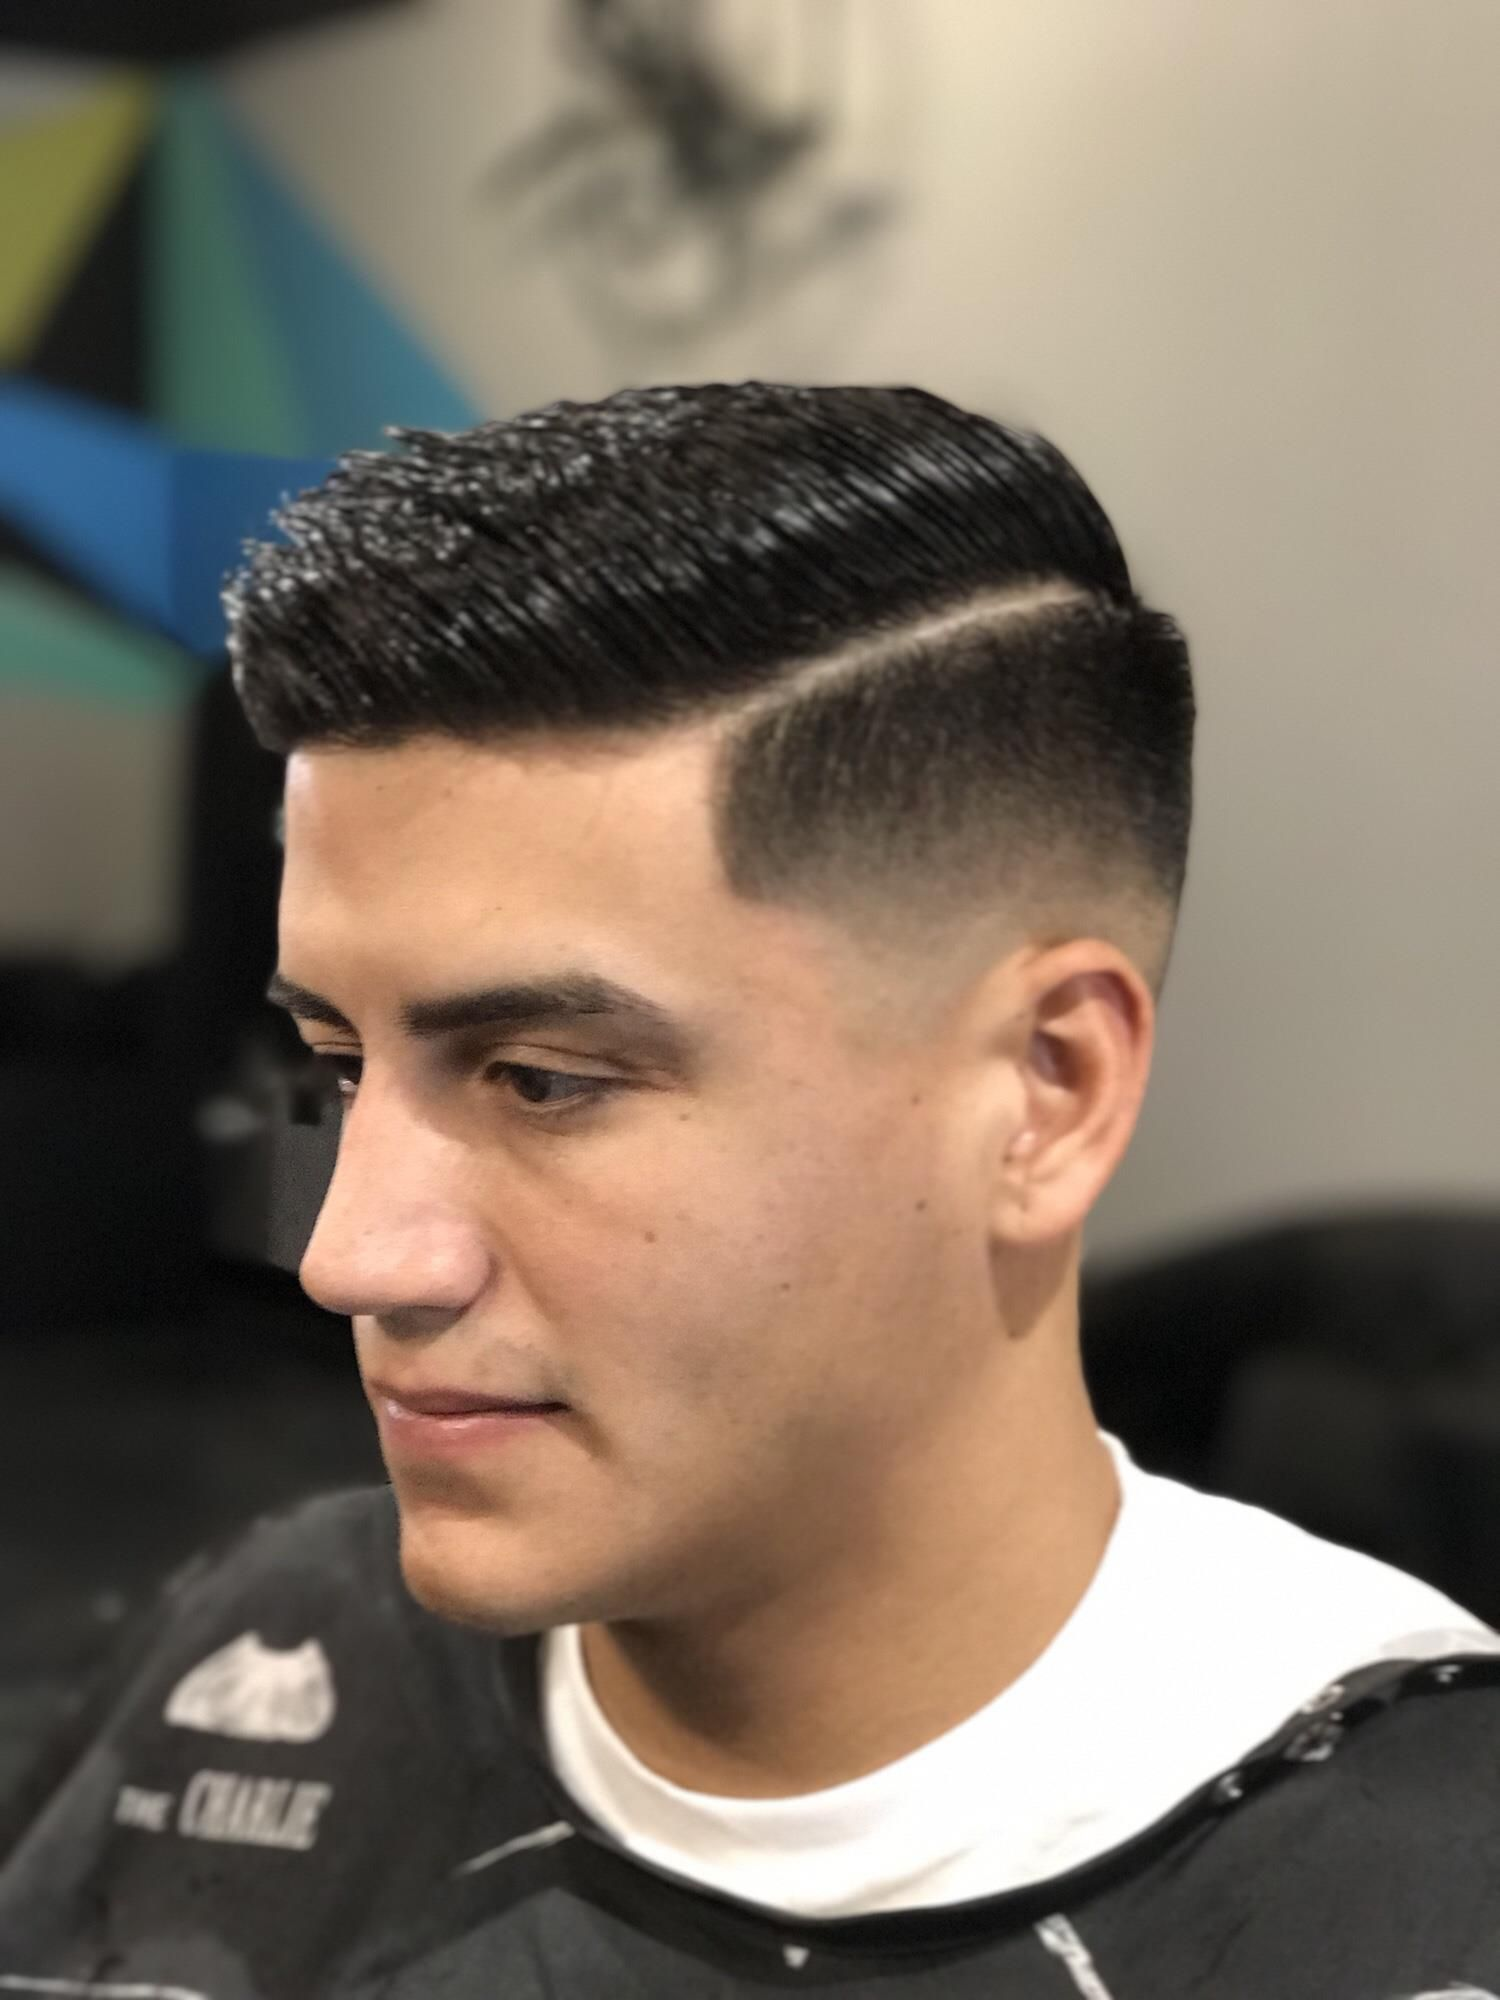 Mens Haircut 25 Any Haircut Of Your Choice Includes A Razor Line